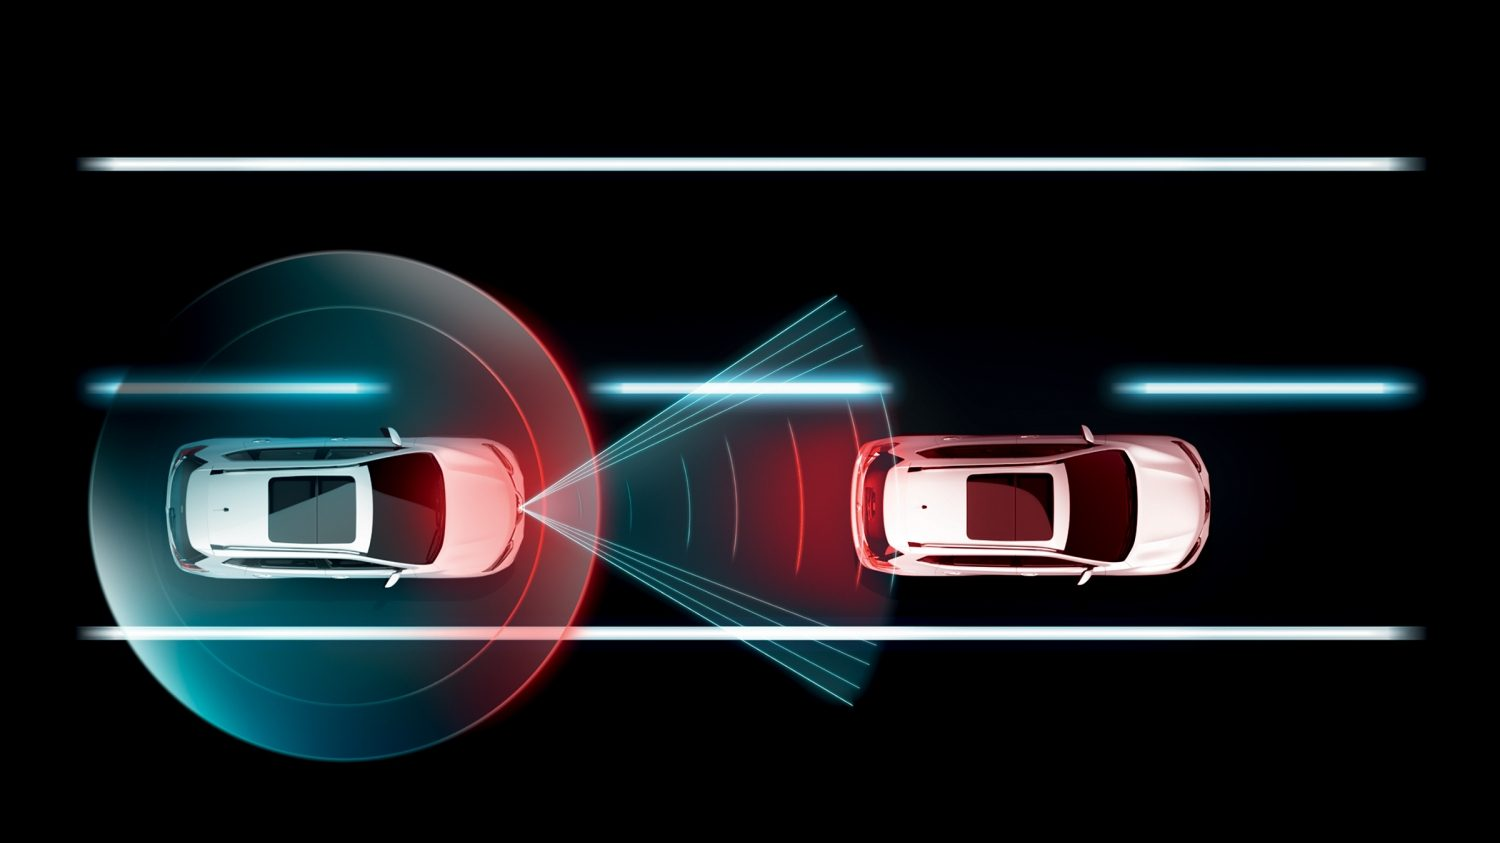 7 seater & 4x4 N-Vision - Autonomous Emergency Braking | Nissan X-Trail